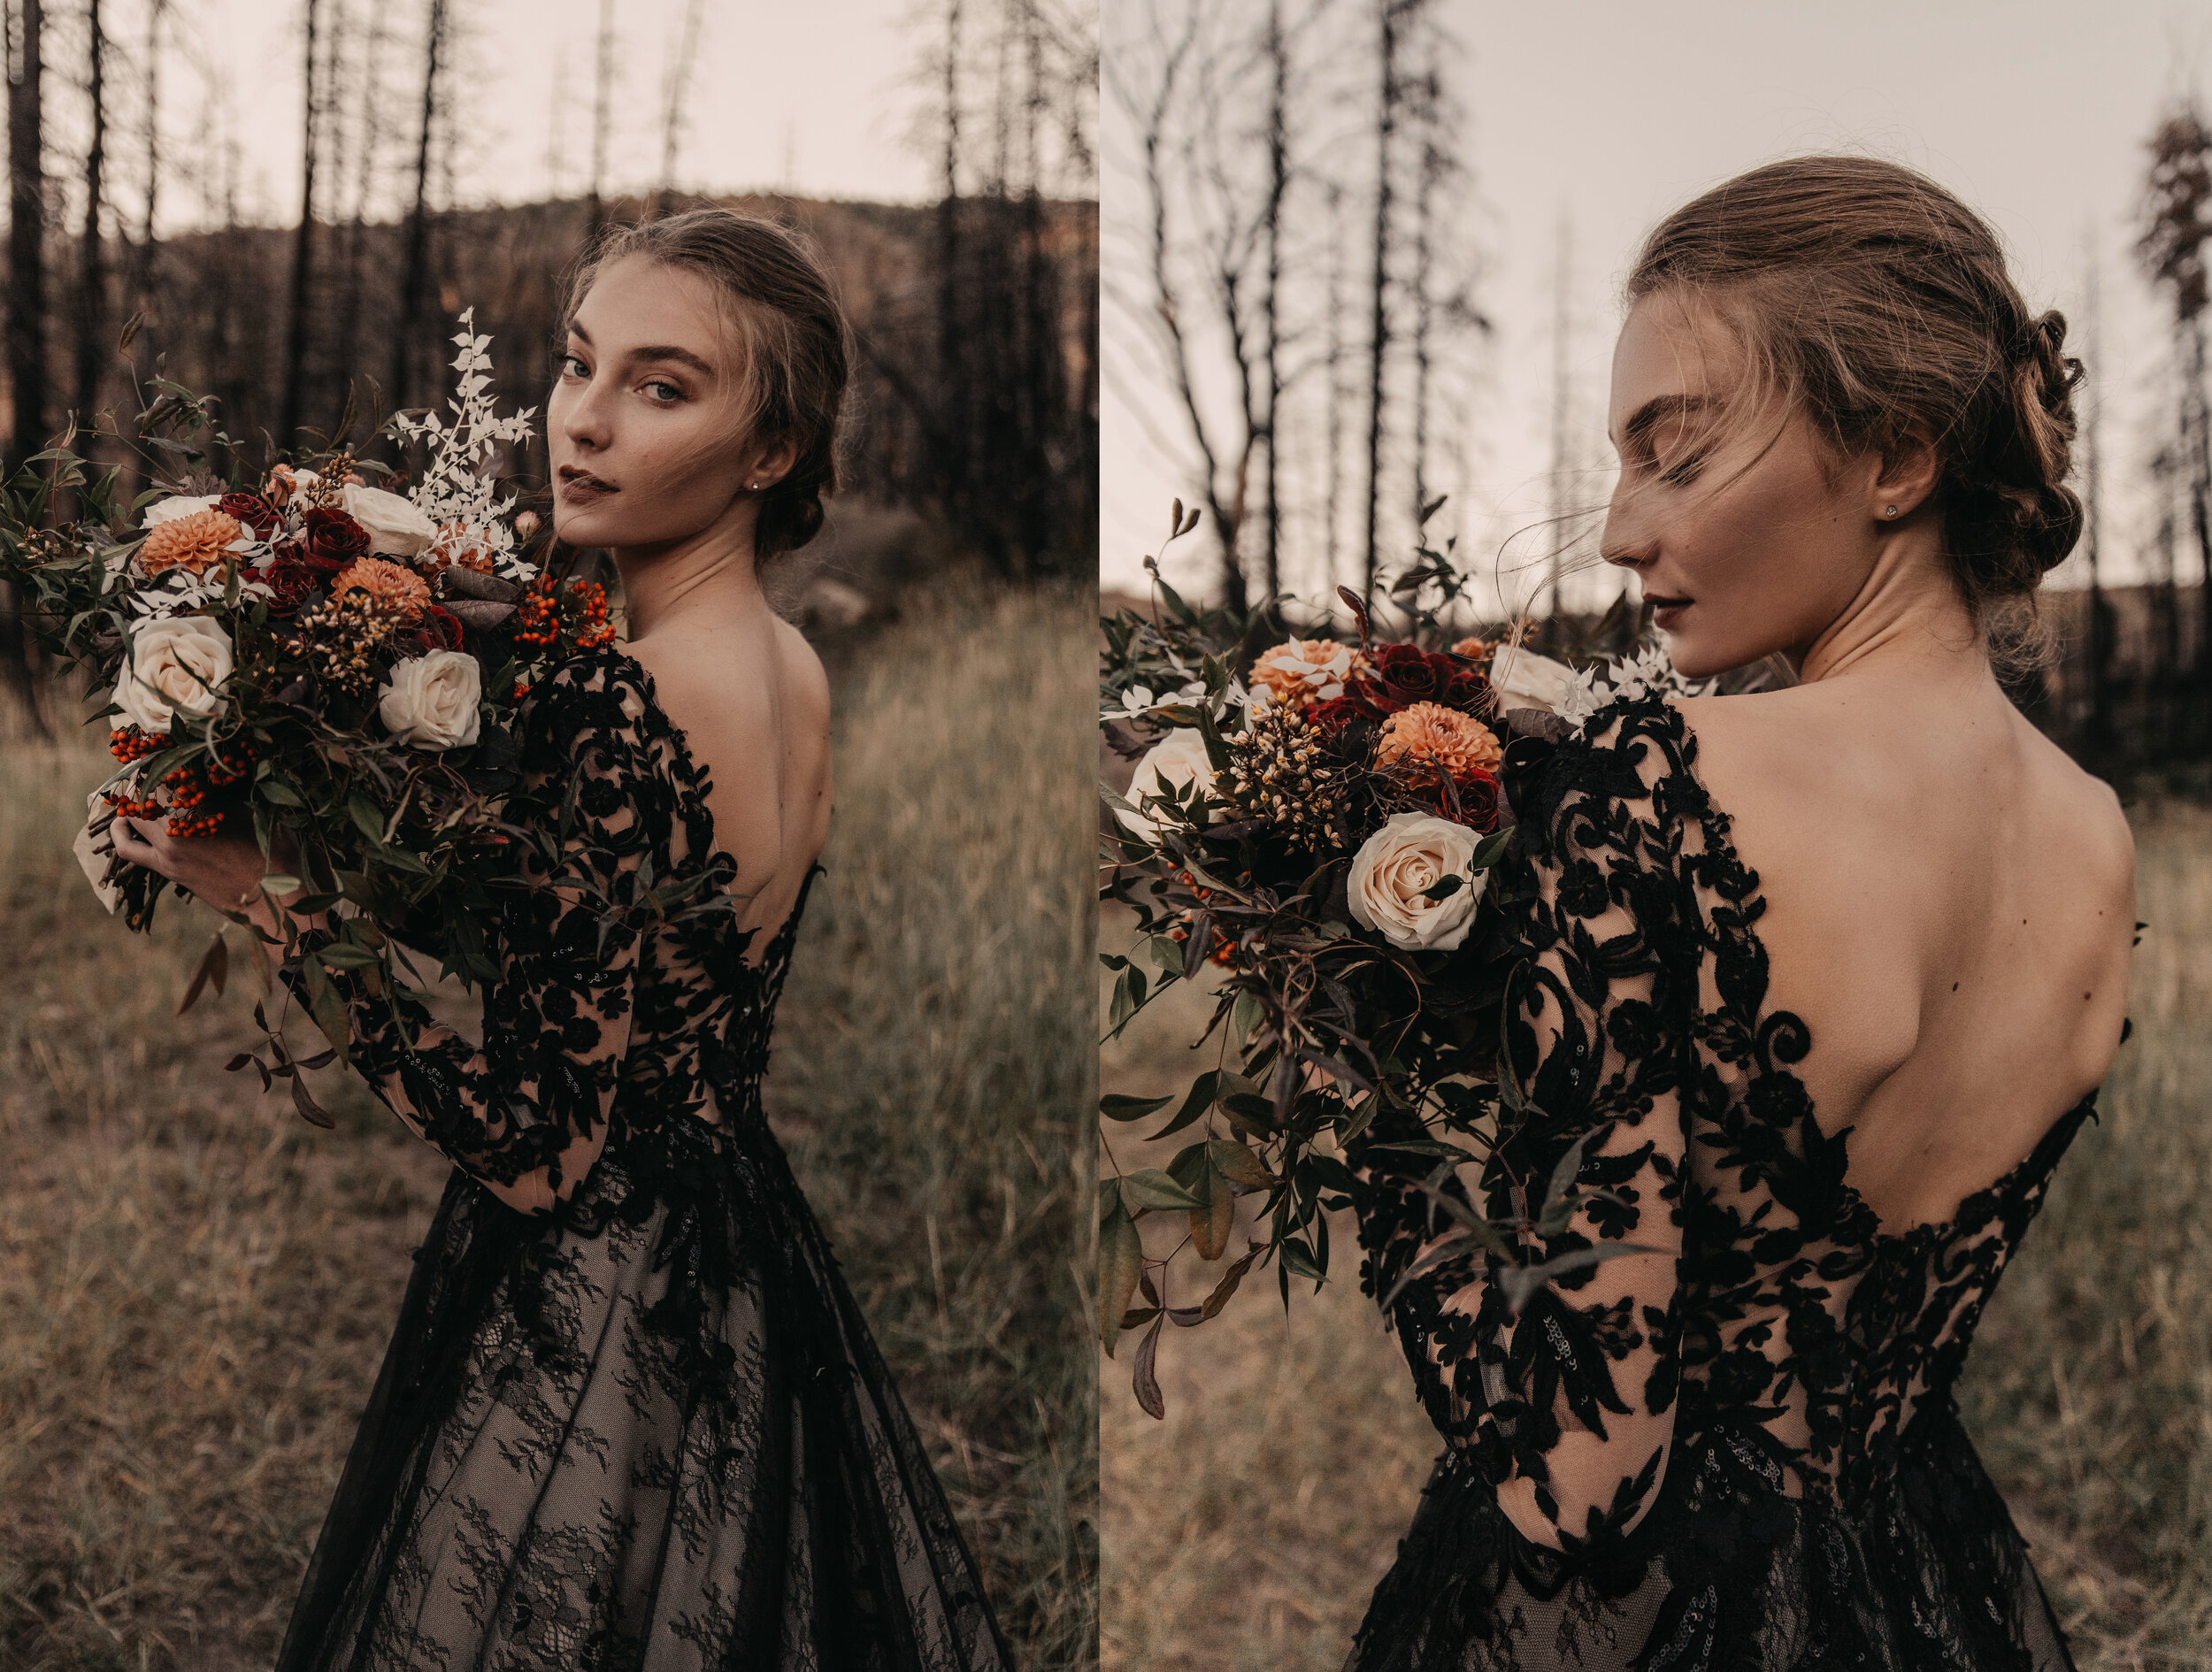 Autumn Bridal Editorial - Black Wedding Dress | Southern California Wedding Photographer